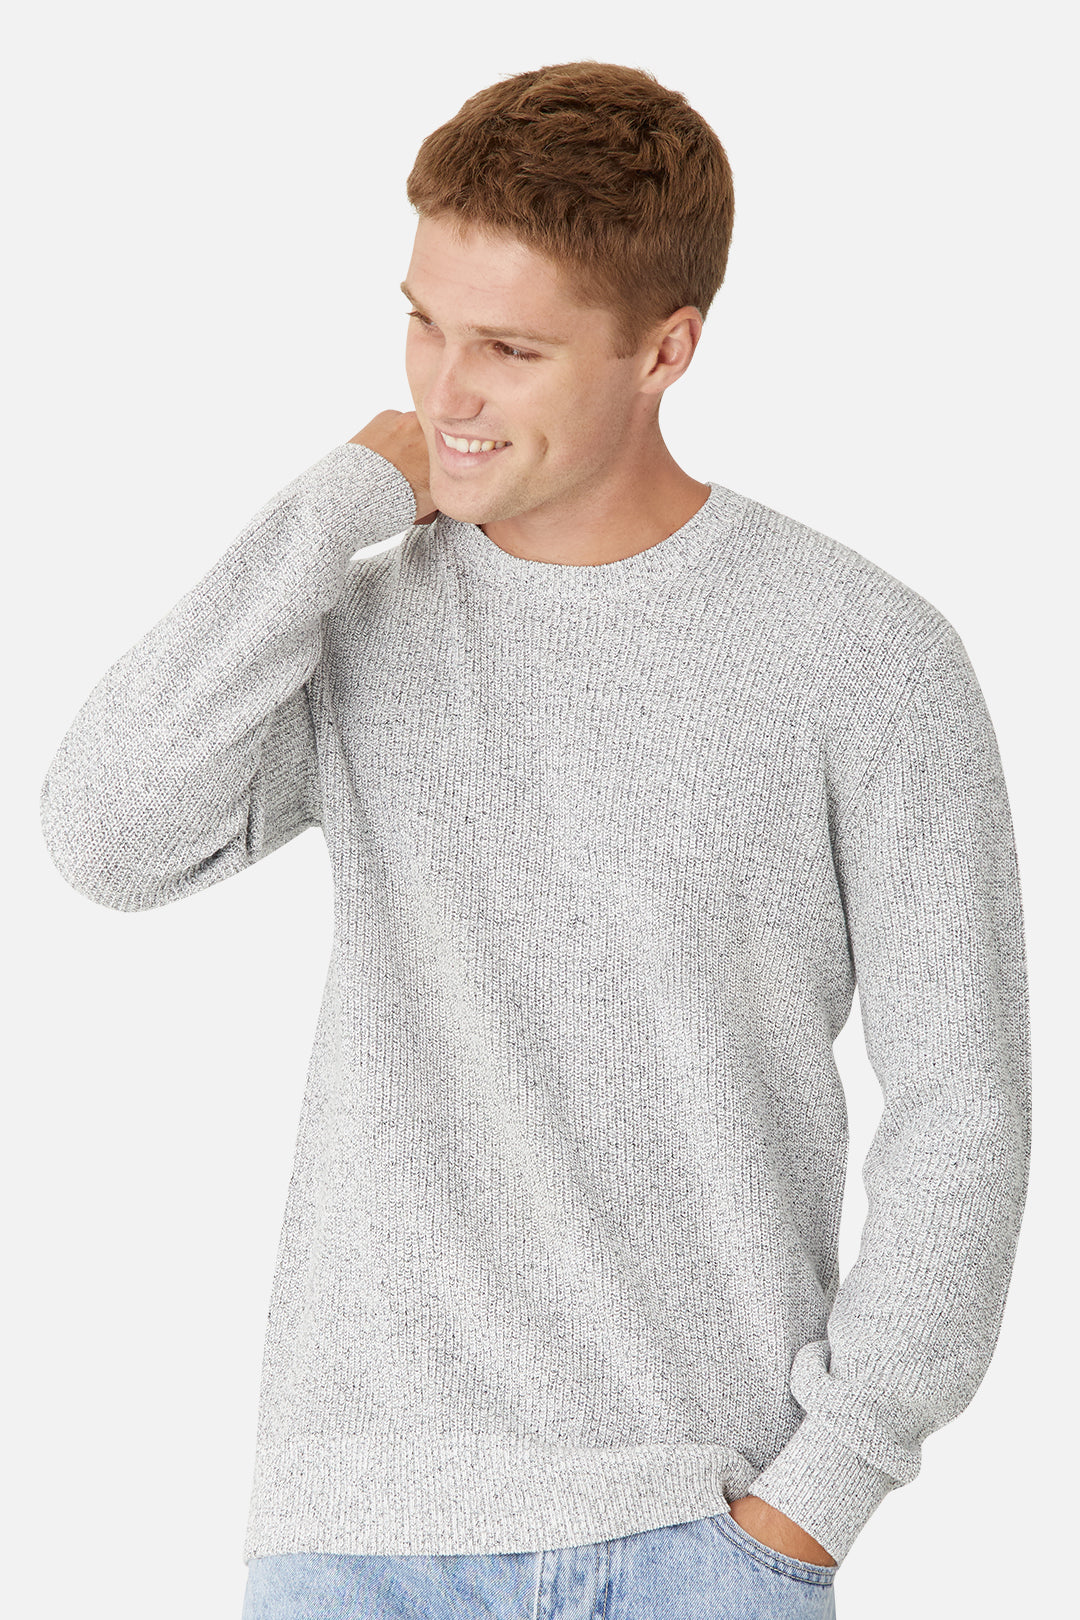 The Kingston Knit - Salt N Pepper